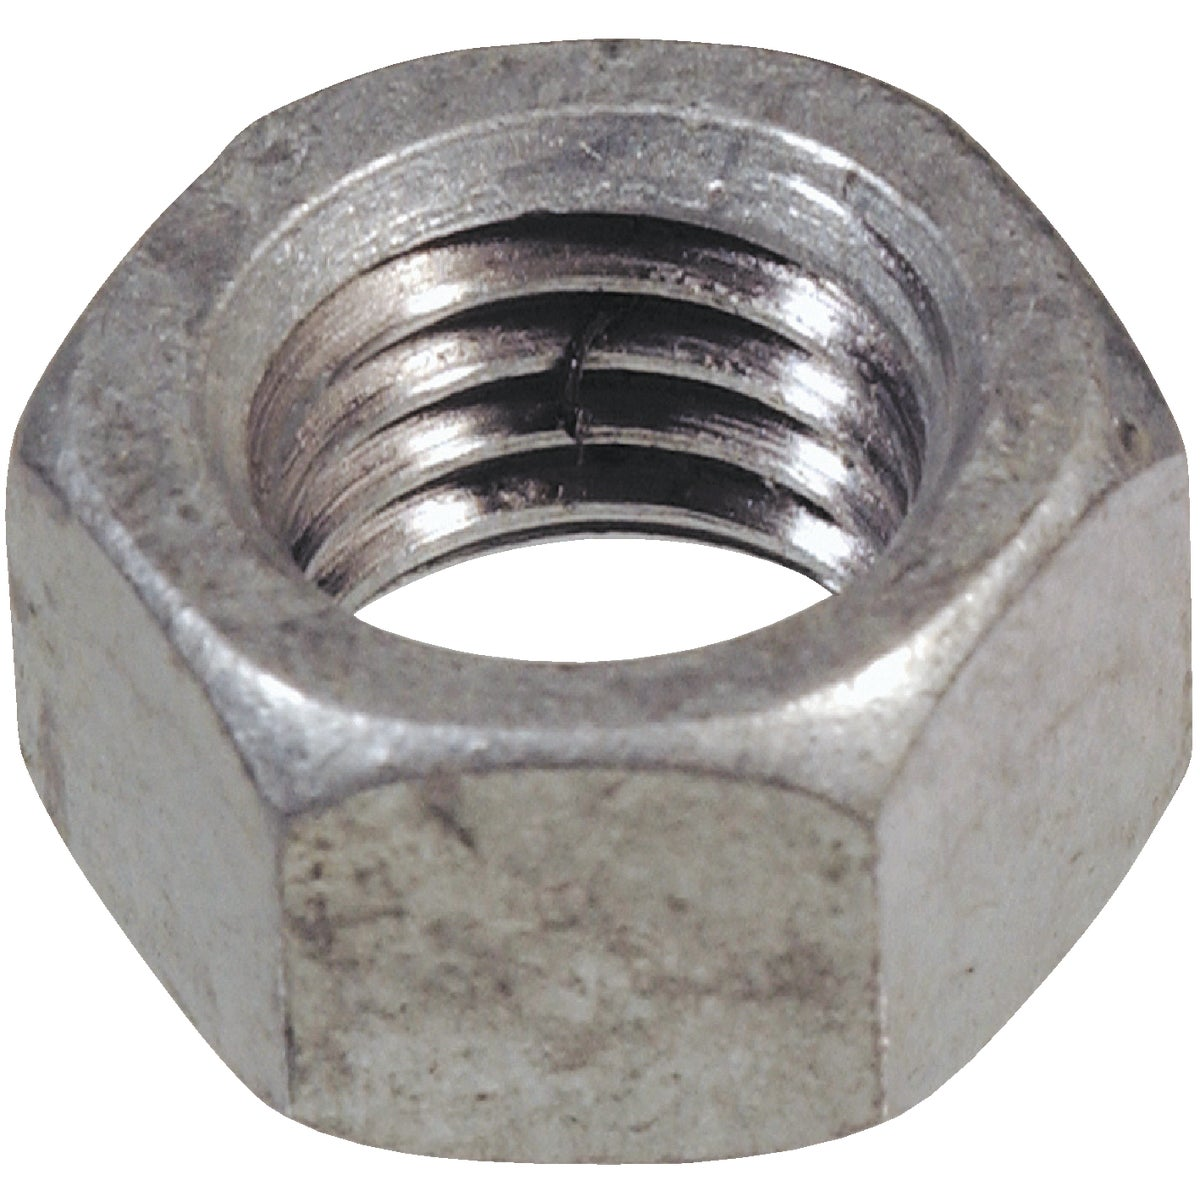 100PC 3/8-16 HEX NUT